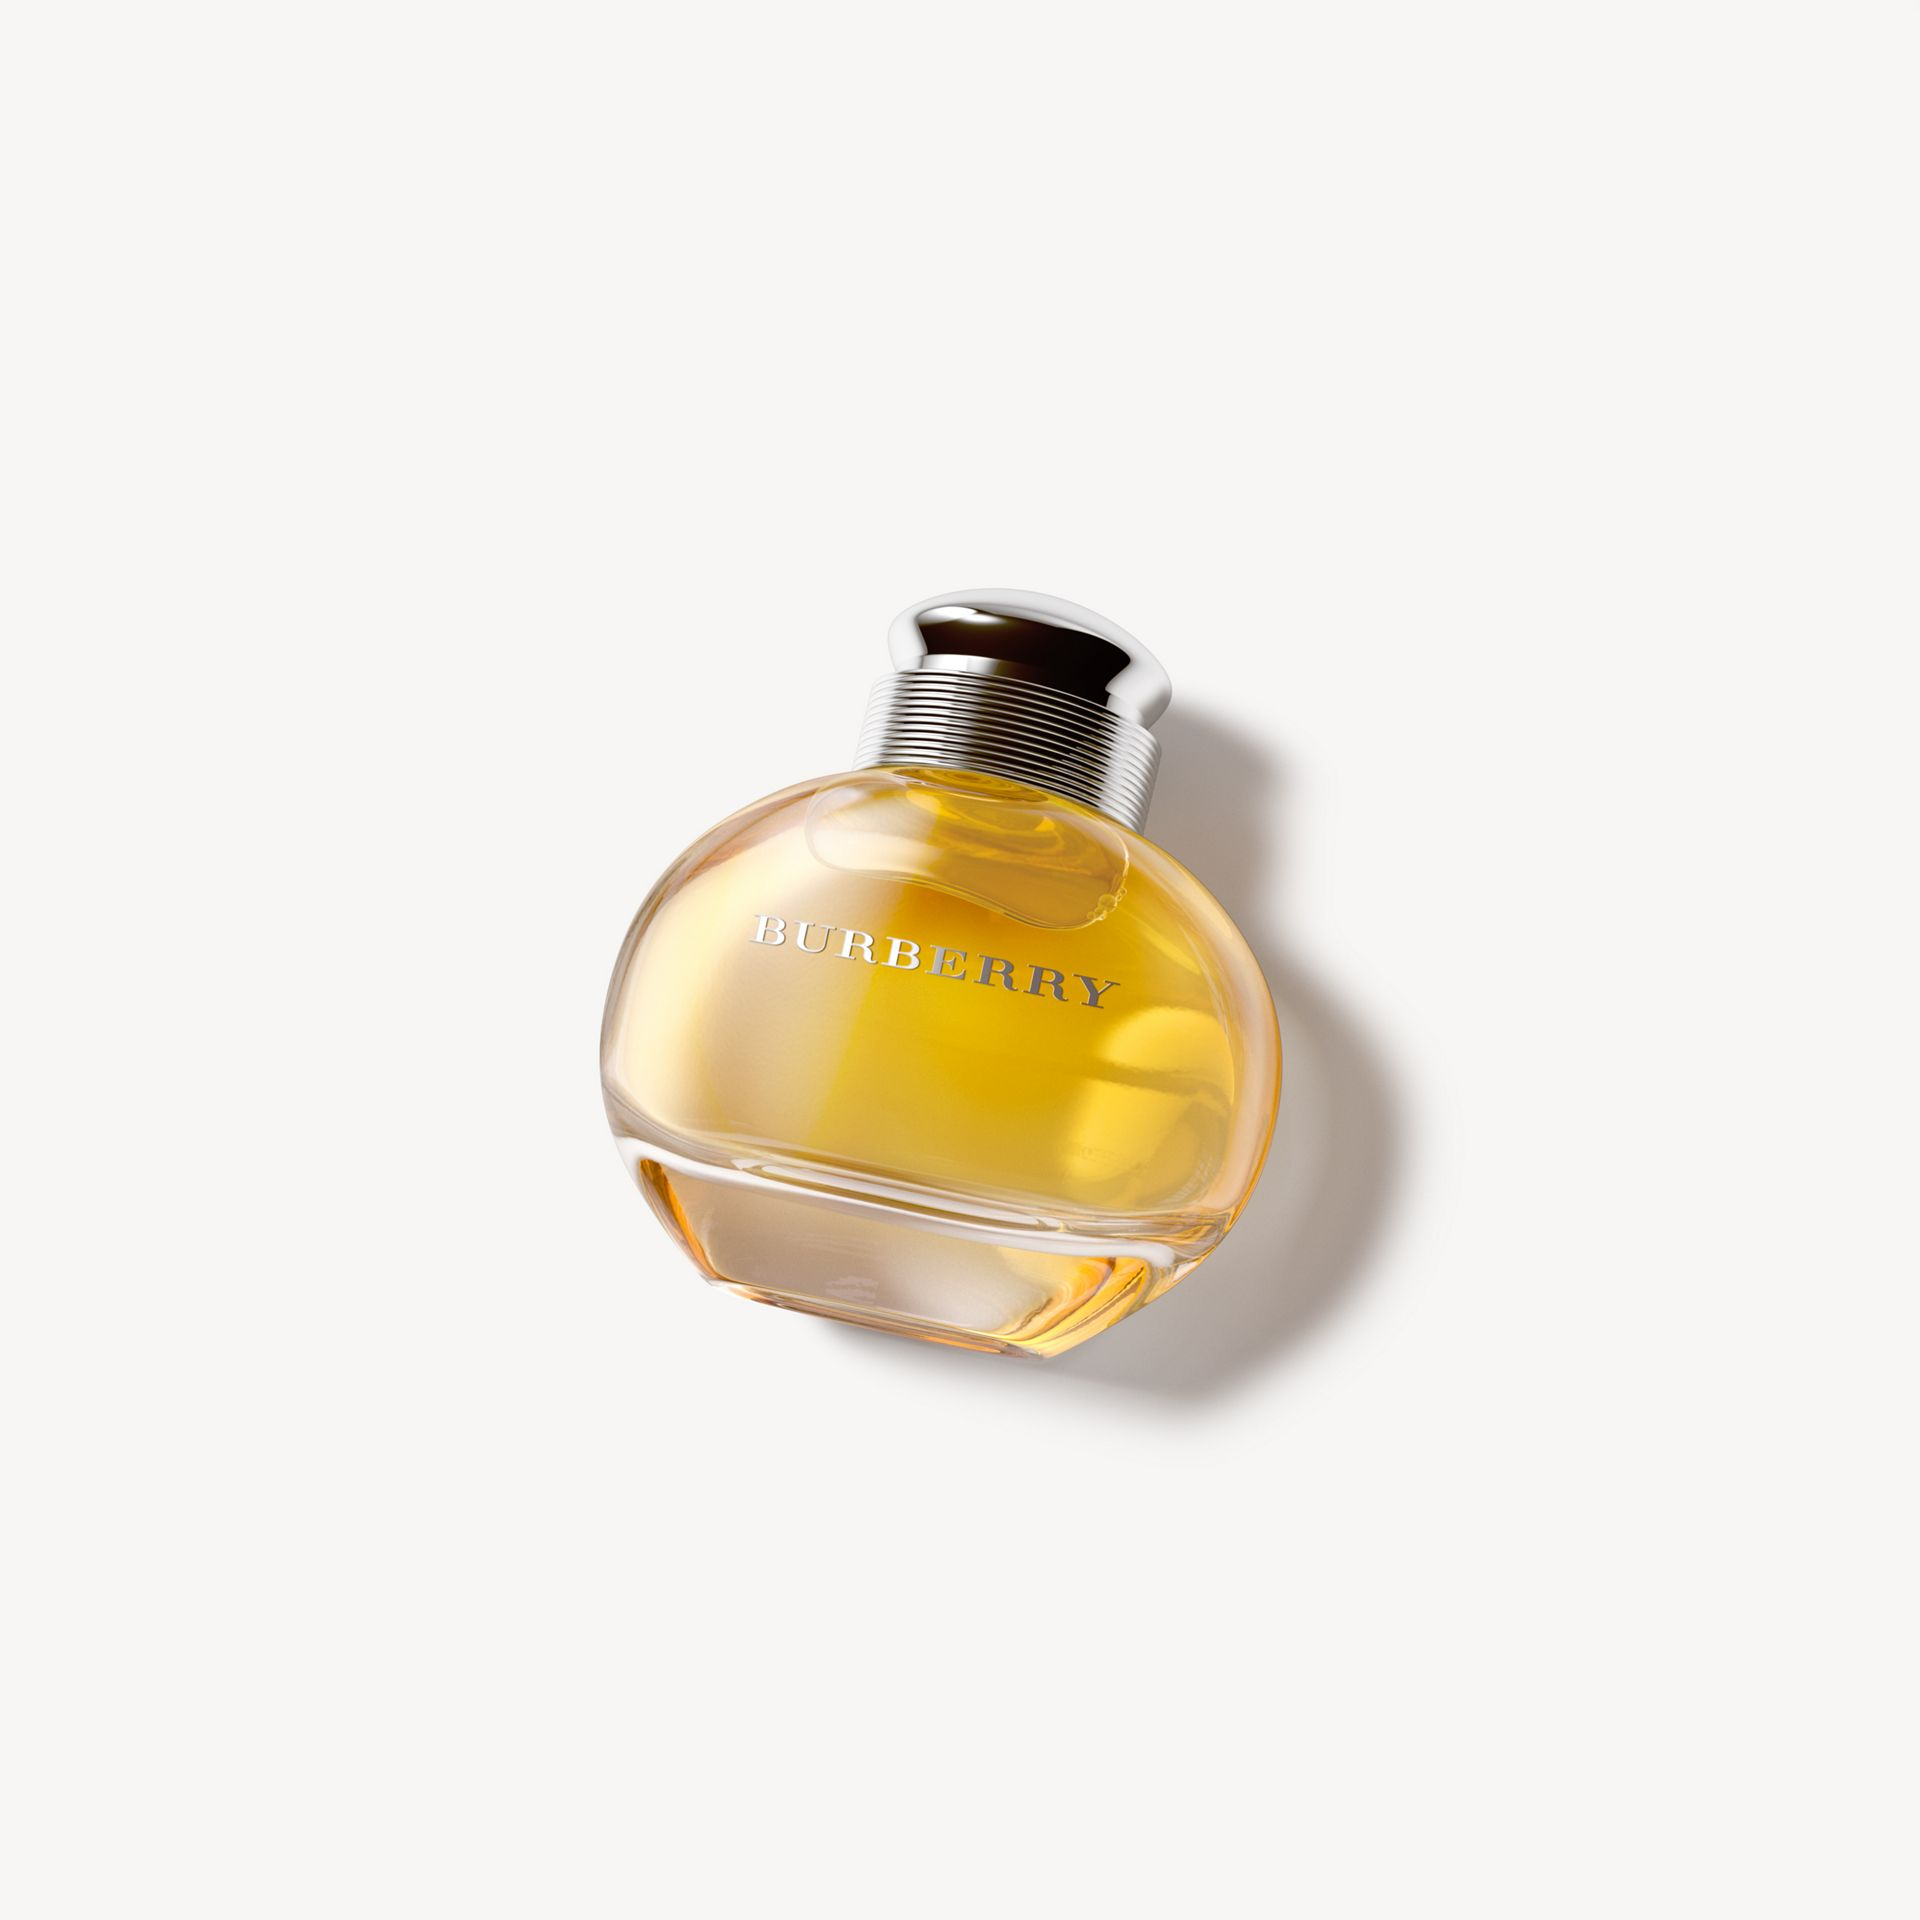 Burberry For Women Eau de Parfum 50ml - Women | Burberry Singapore - gallery image 1